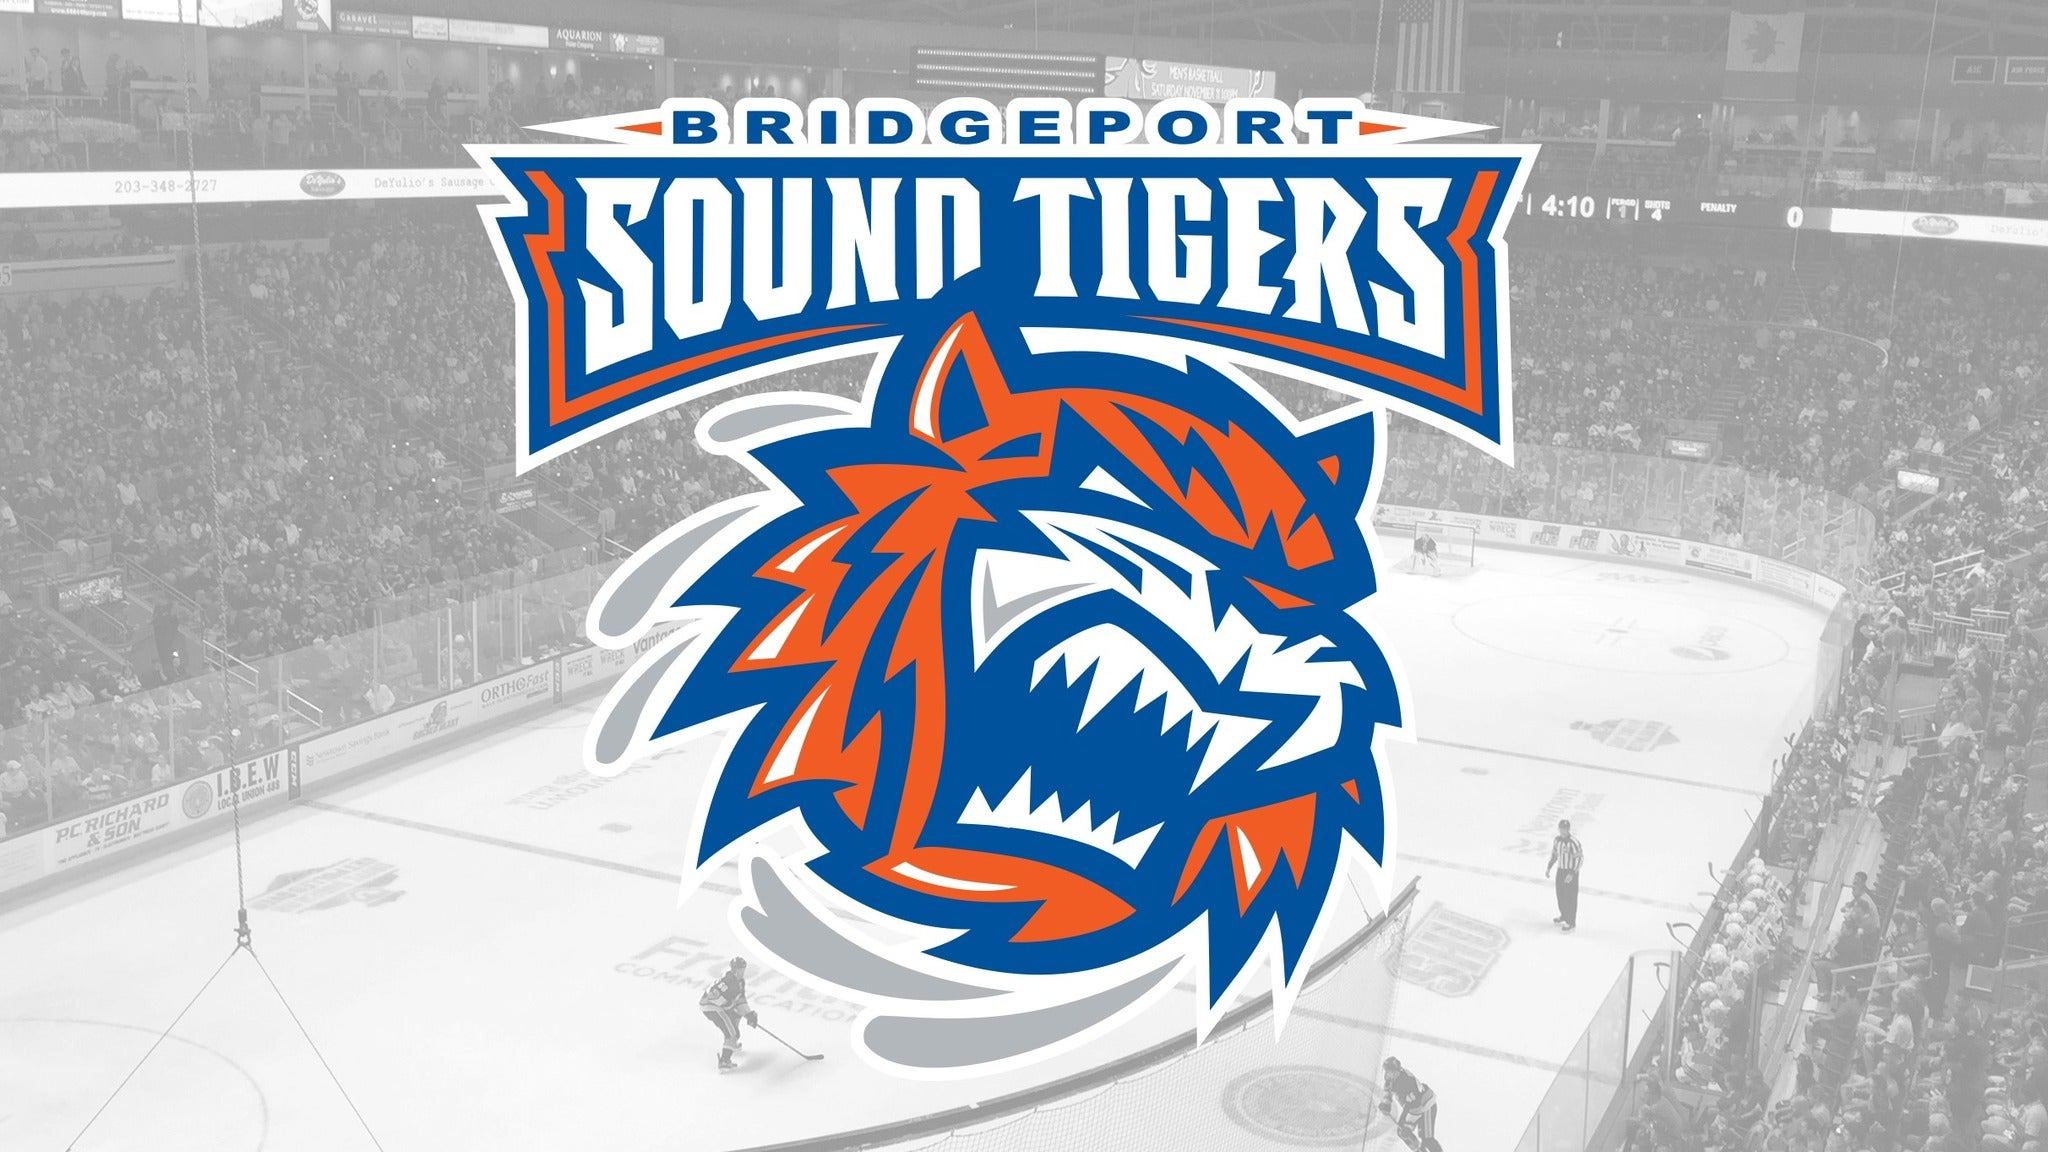 Bridgeport Sound Tigers vs. Utica Comets - Bridgeport, CT 06604